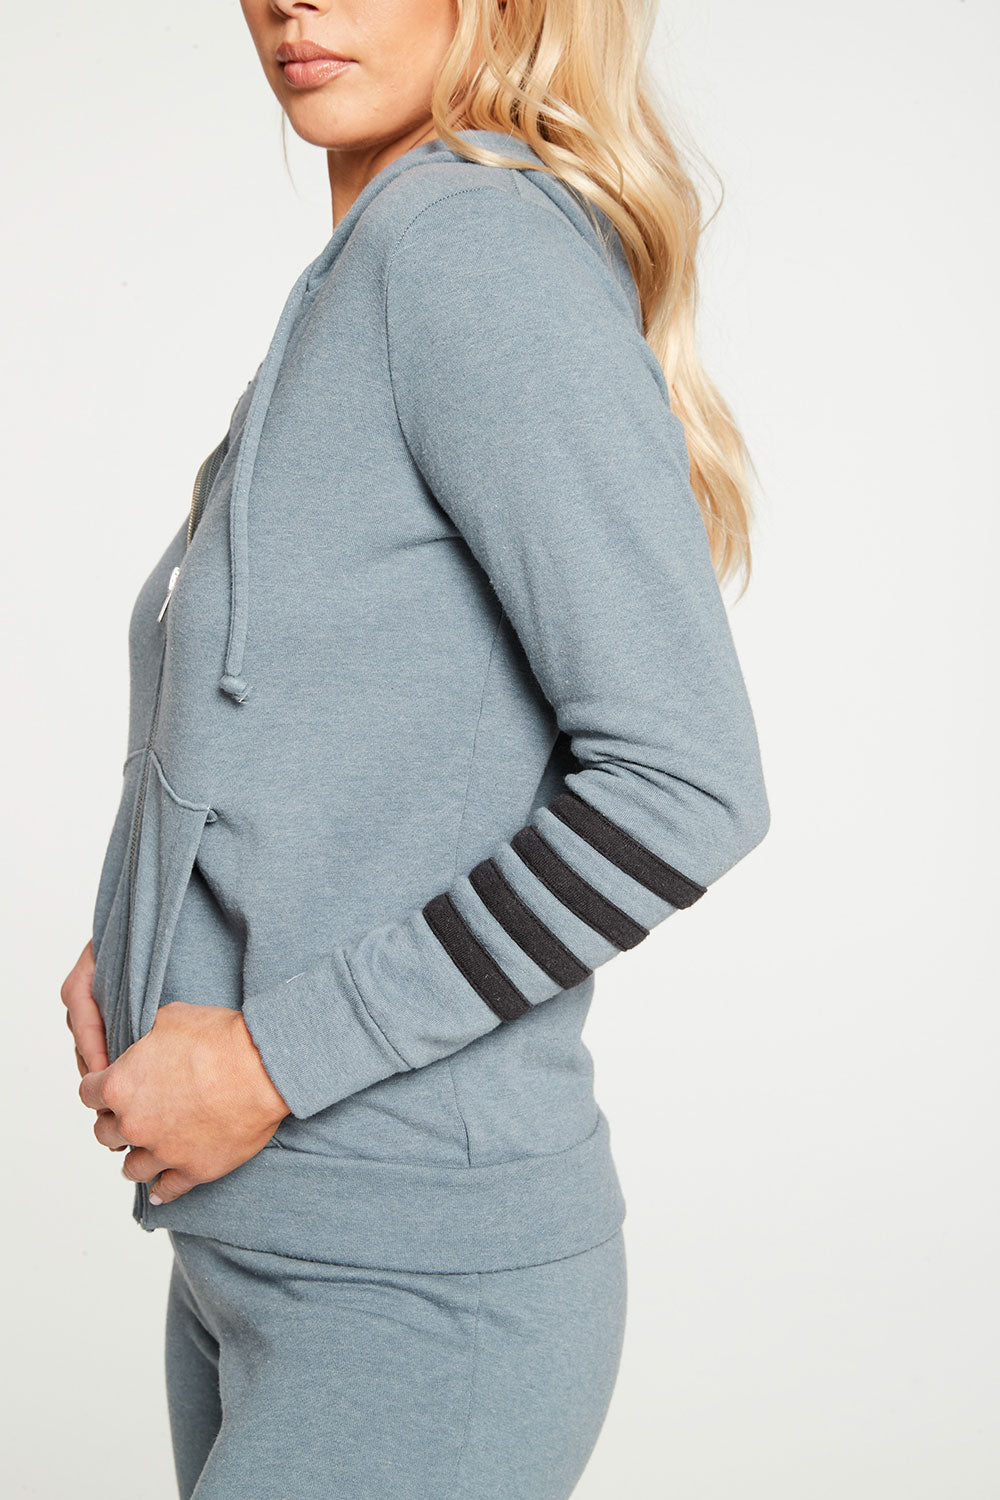 Cashmere Fleece Long Sleeve Zip Up Hoodie with Strappings